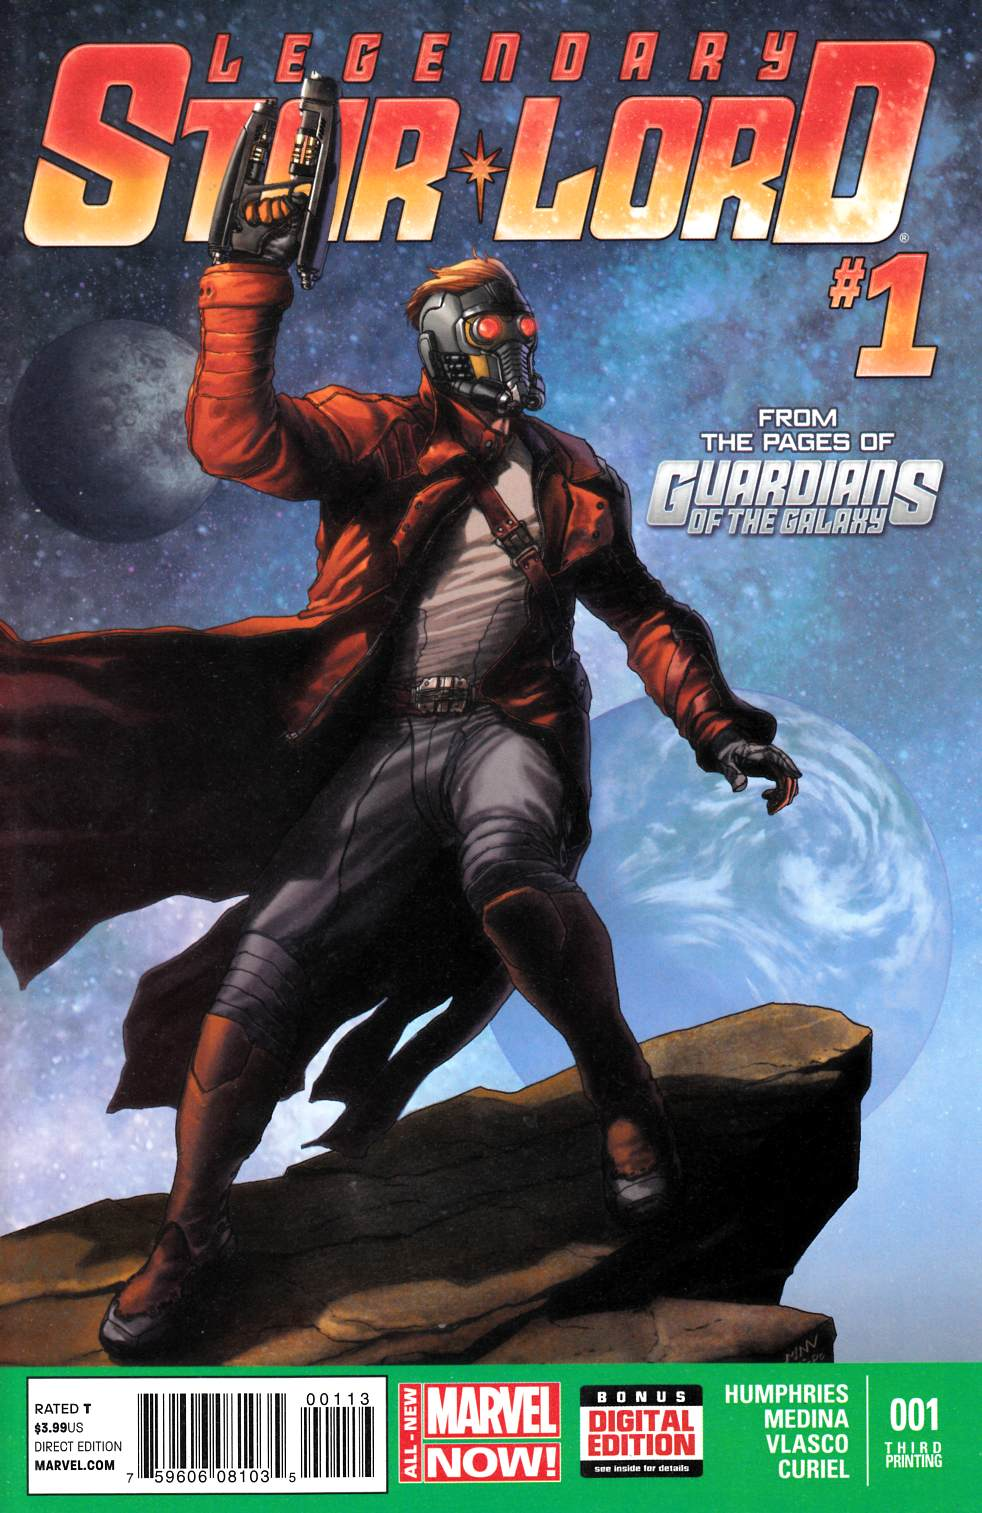 SDCC 2014 Exclusive Legendary Star Lord #1 Marvel Comics Young B/&W Variant Cover